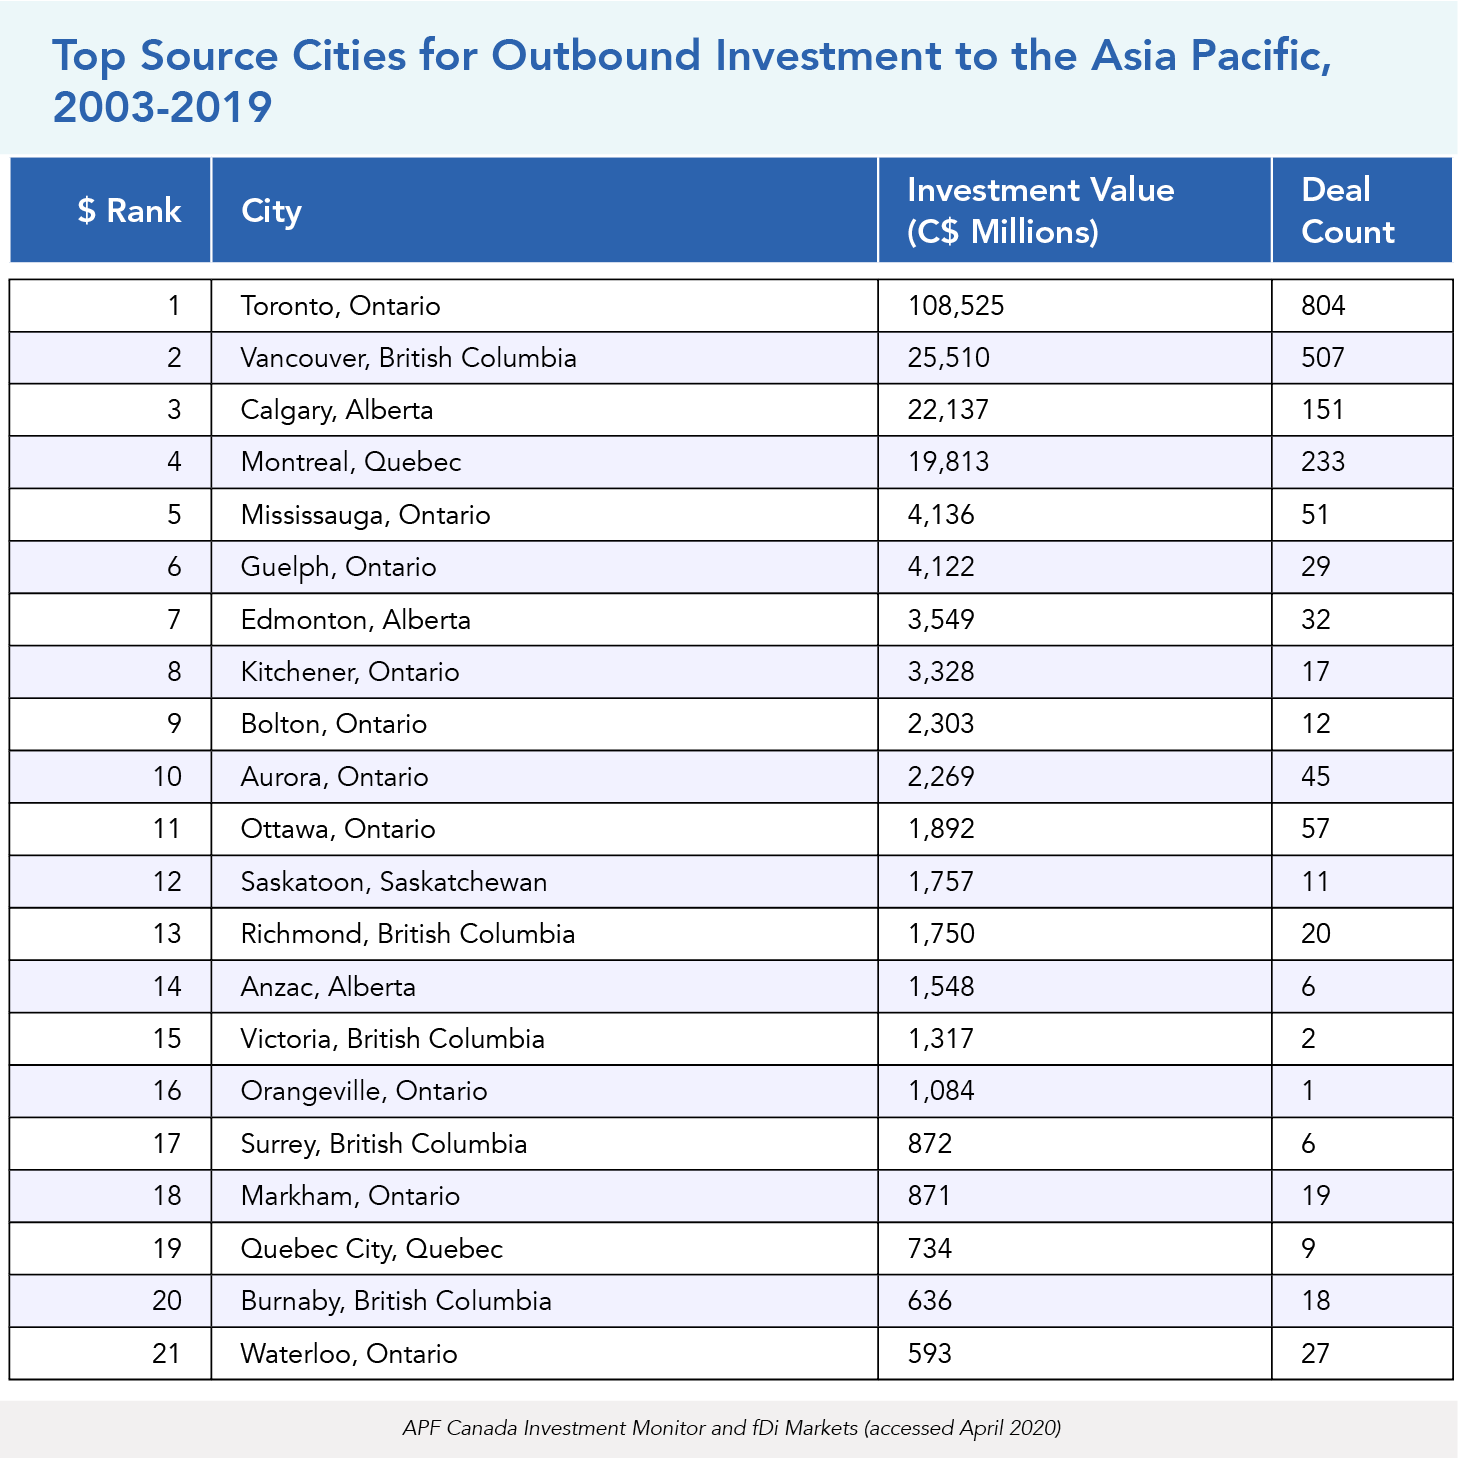 Top Source Cities of Outbound Investment to the Asia Pacific, 2003-2019